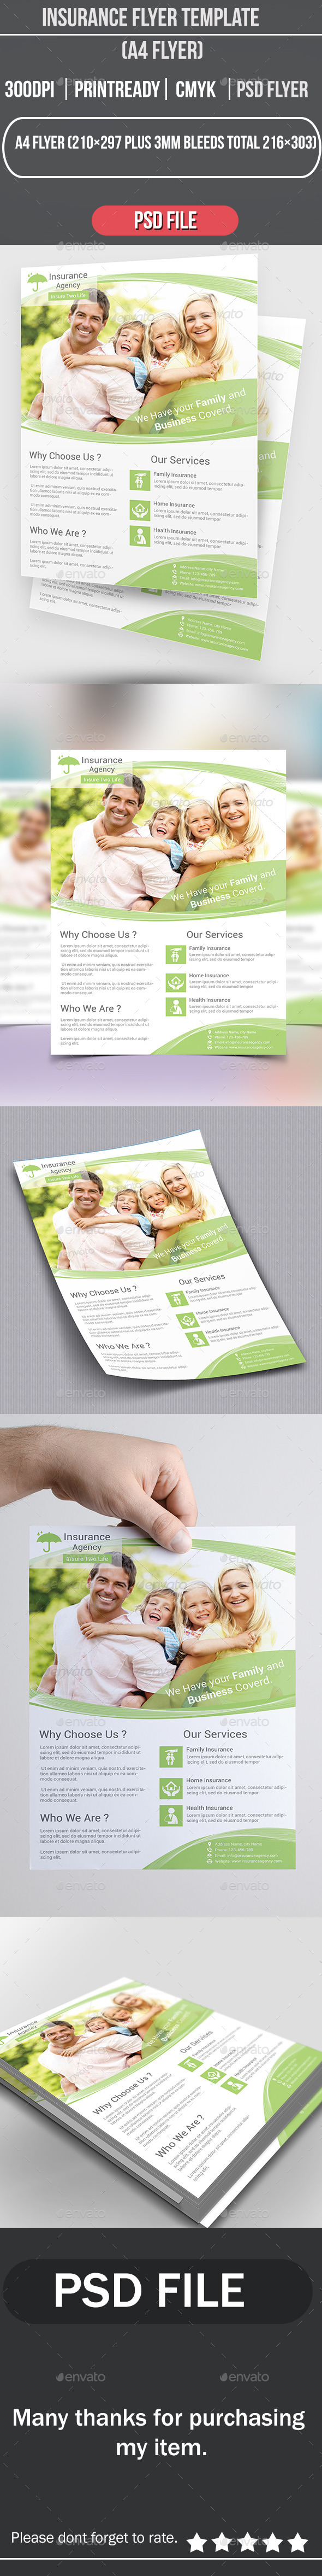 GraphicRiver Insurance Flyer Template 8977016